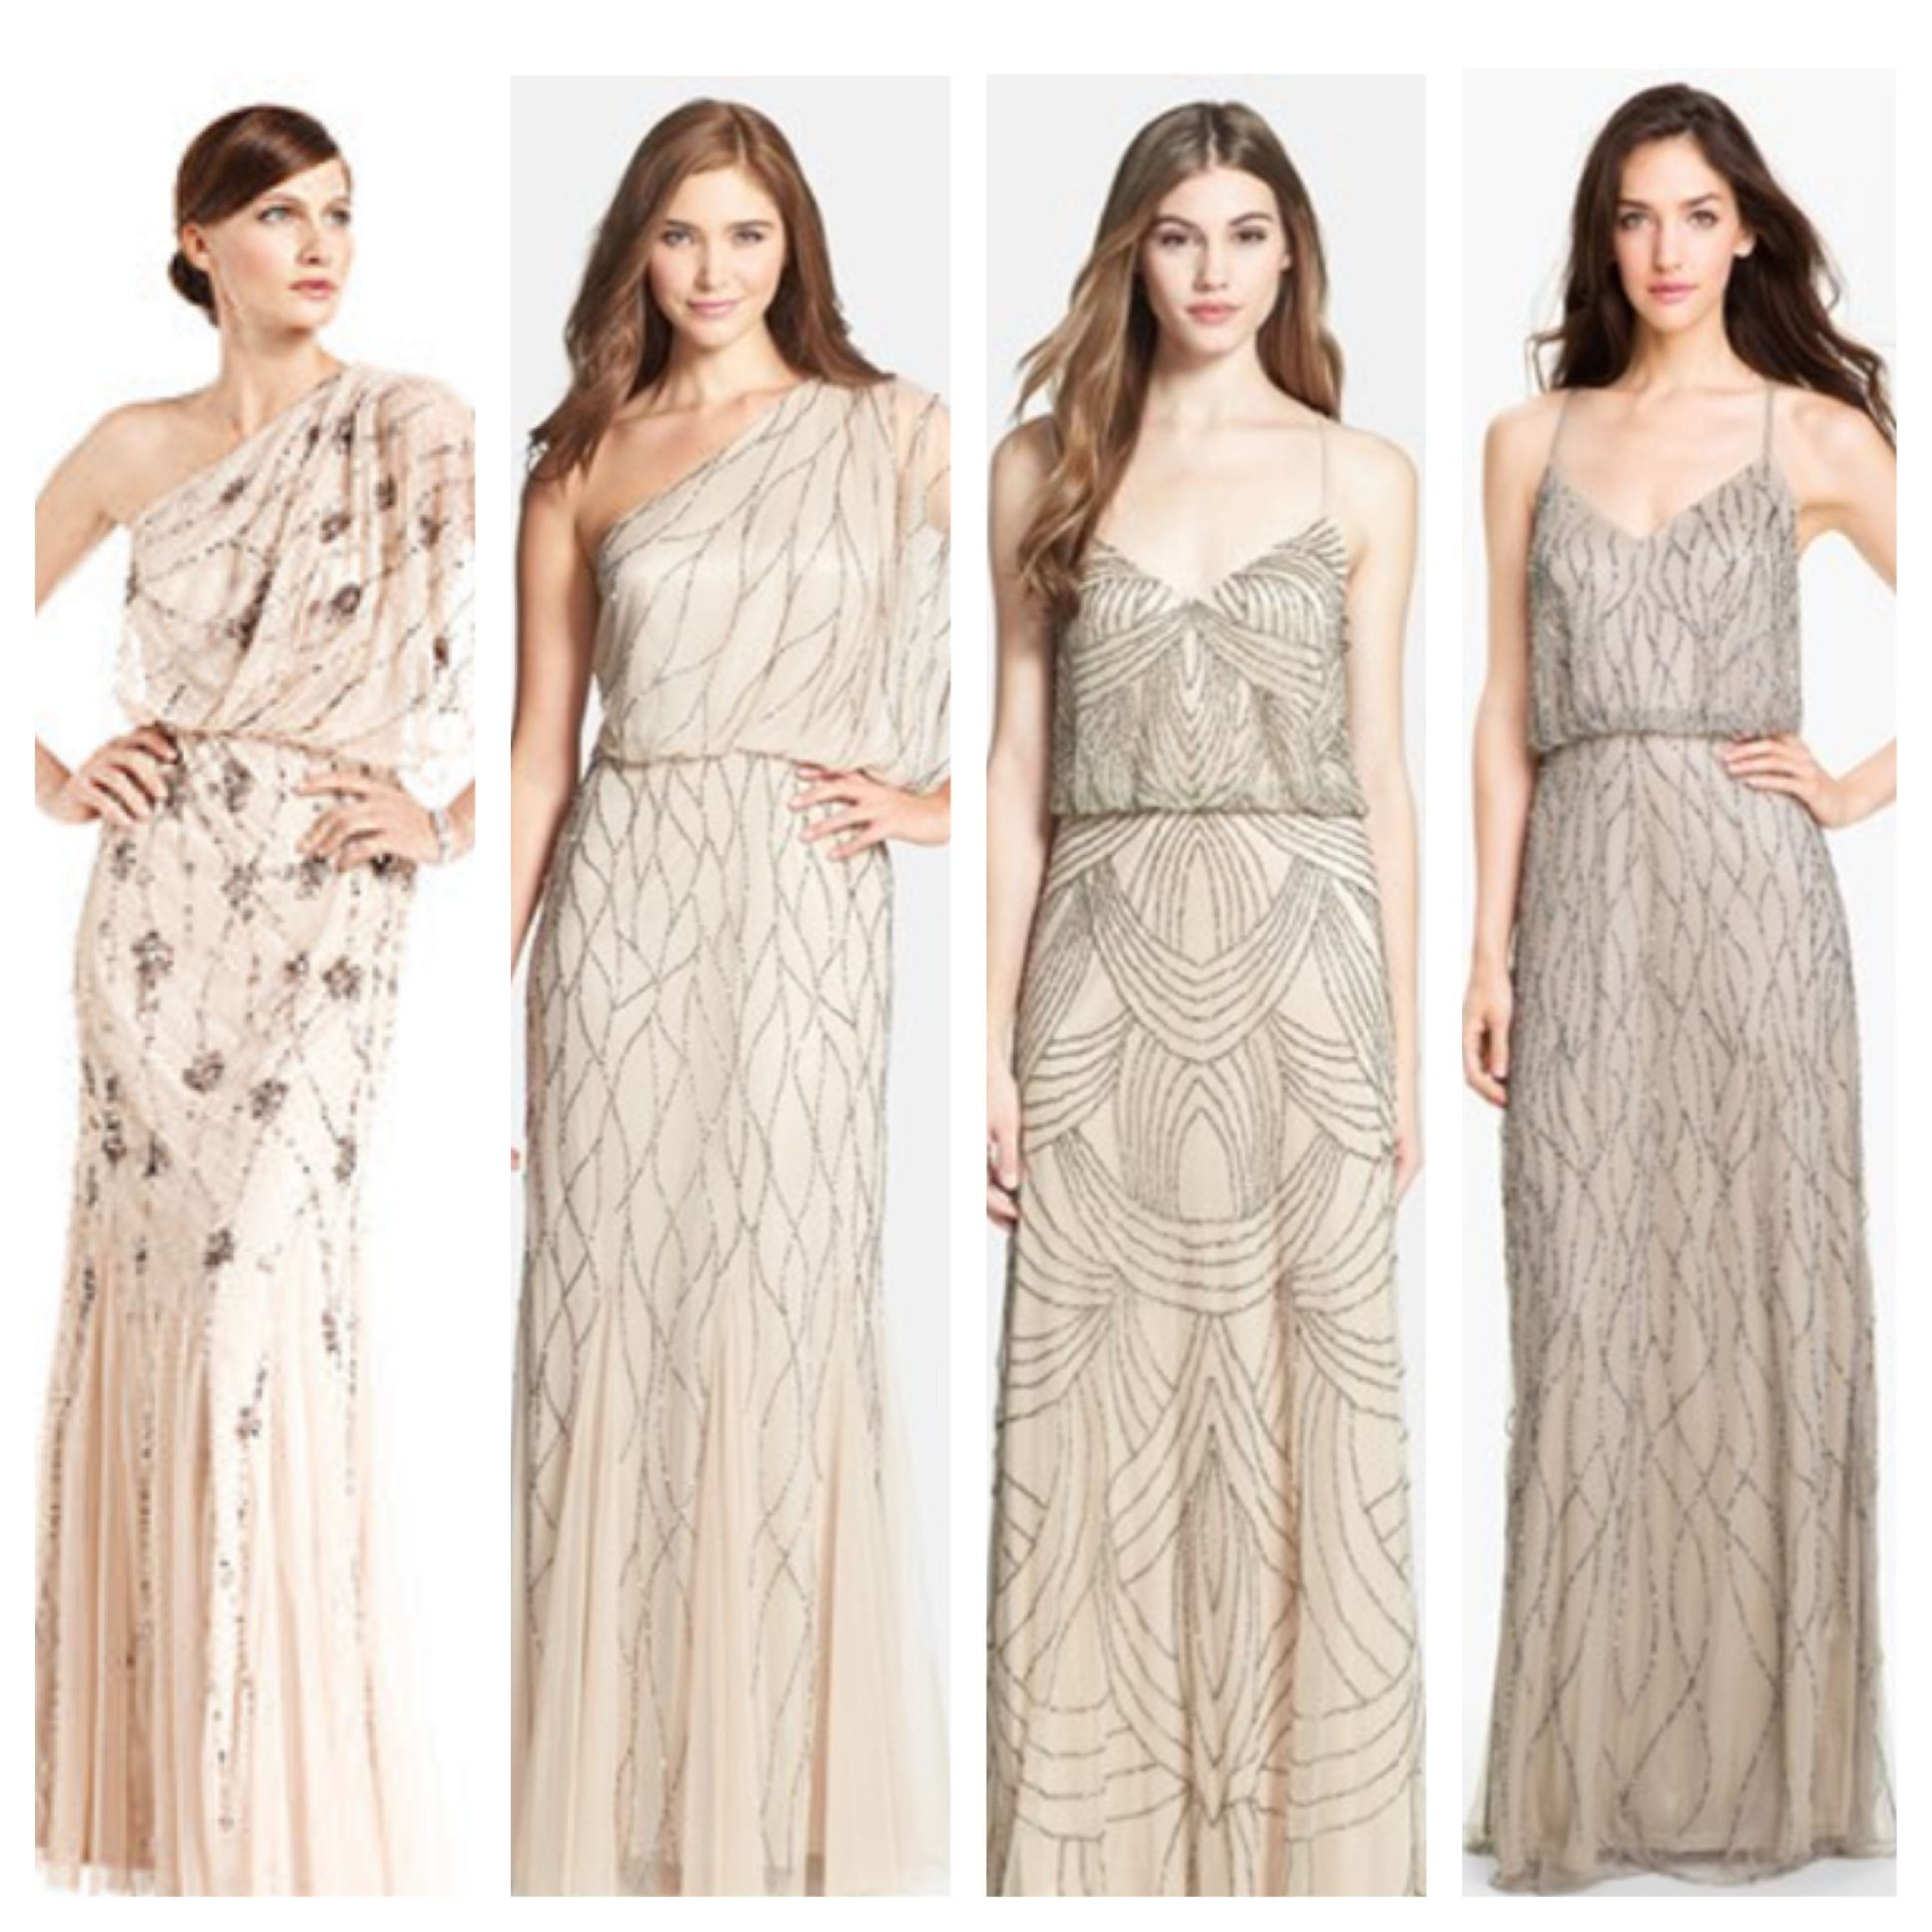 Bridesmaids dresses from adrianna papell macys nordstrom 1 or bridesmaids dresses from adrianna papell macys nordstrom 1 or 2 could be ombrellifo Images